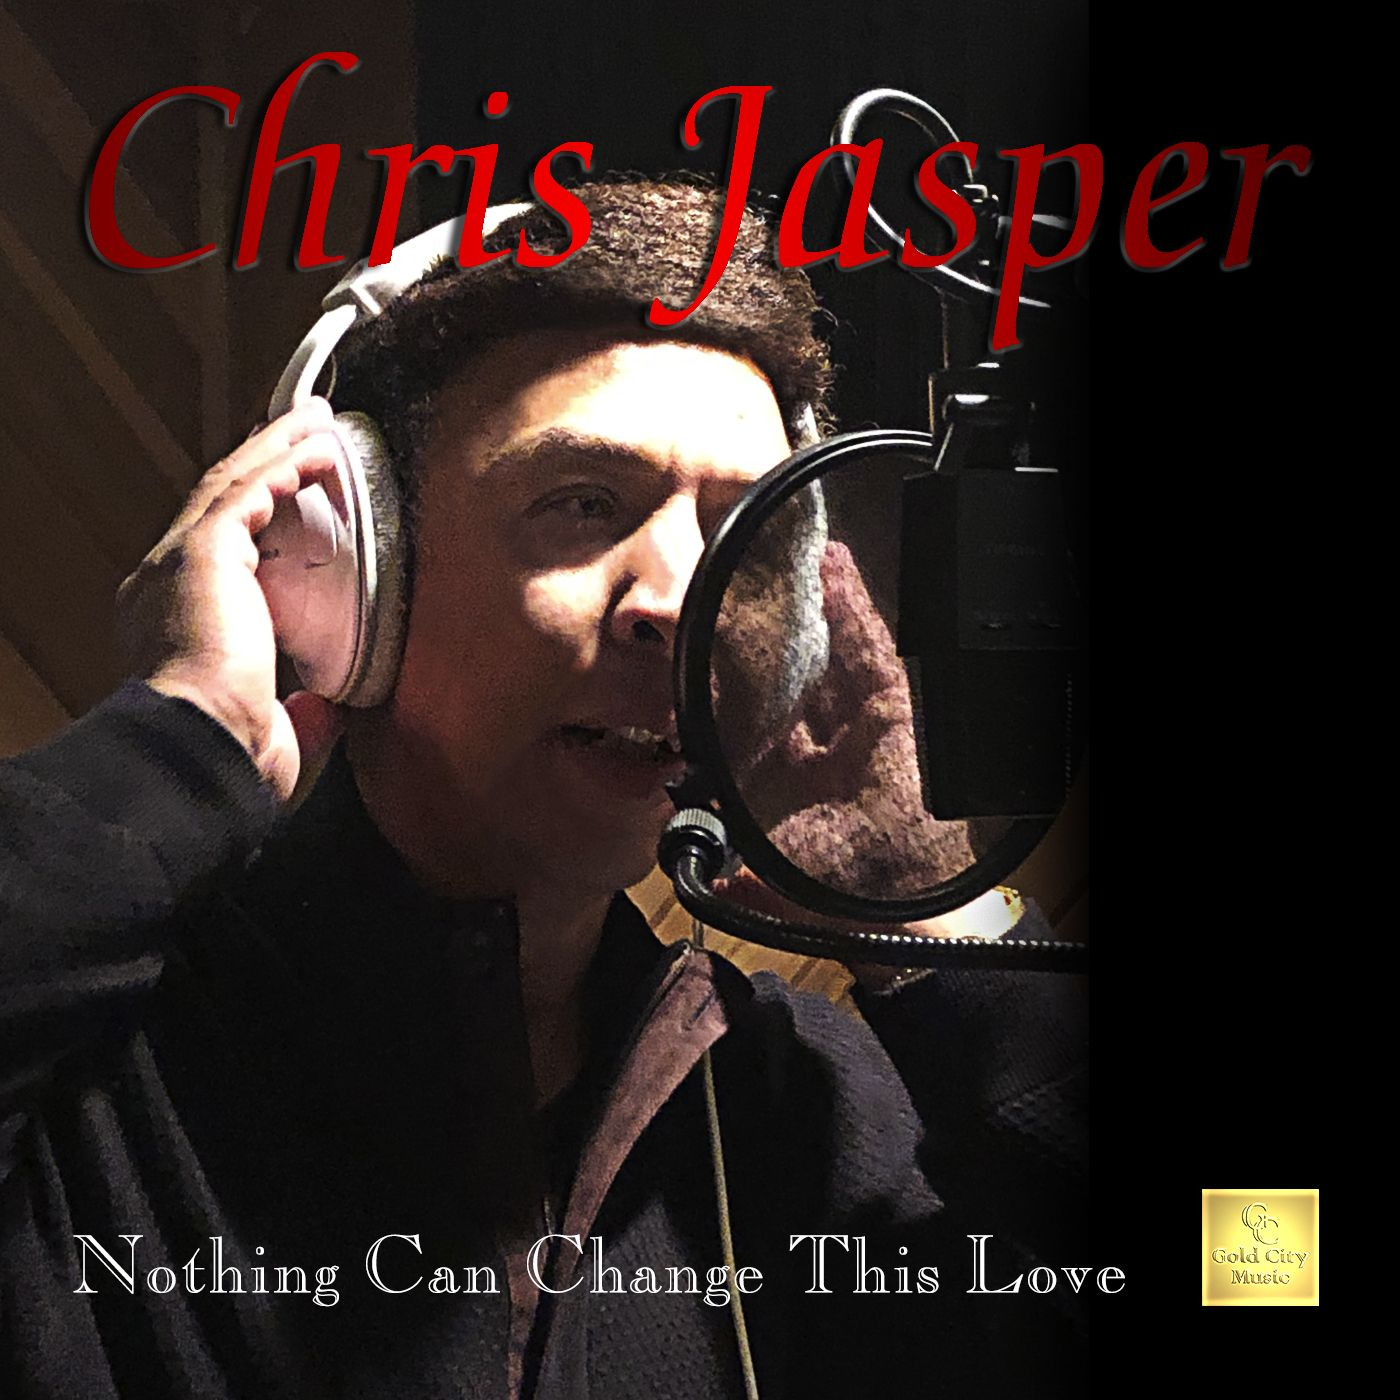 New Single by Chris Jasper